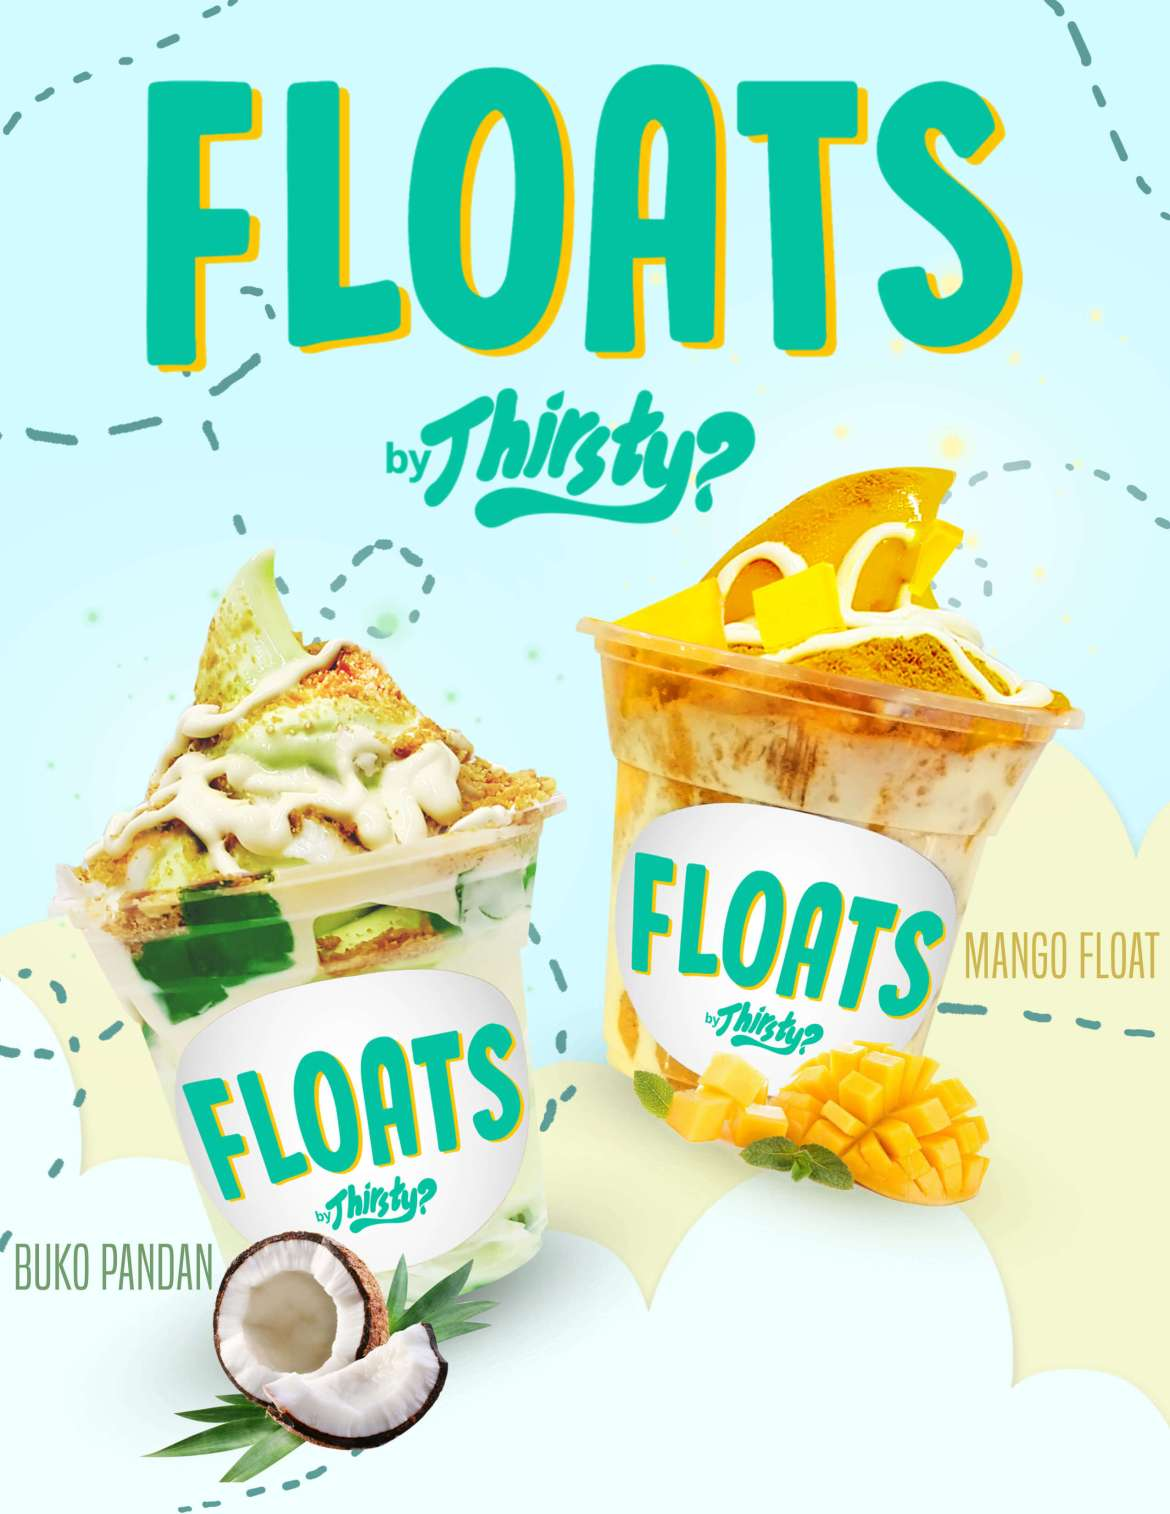 Thirsty Floats